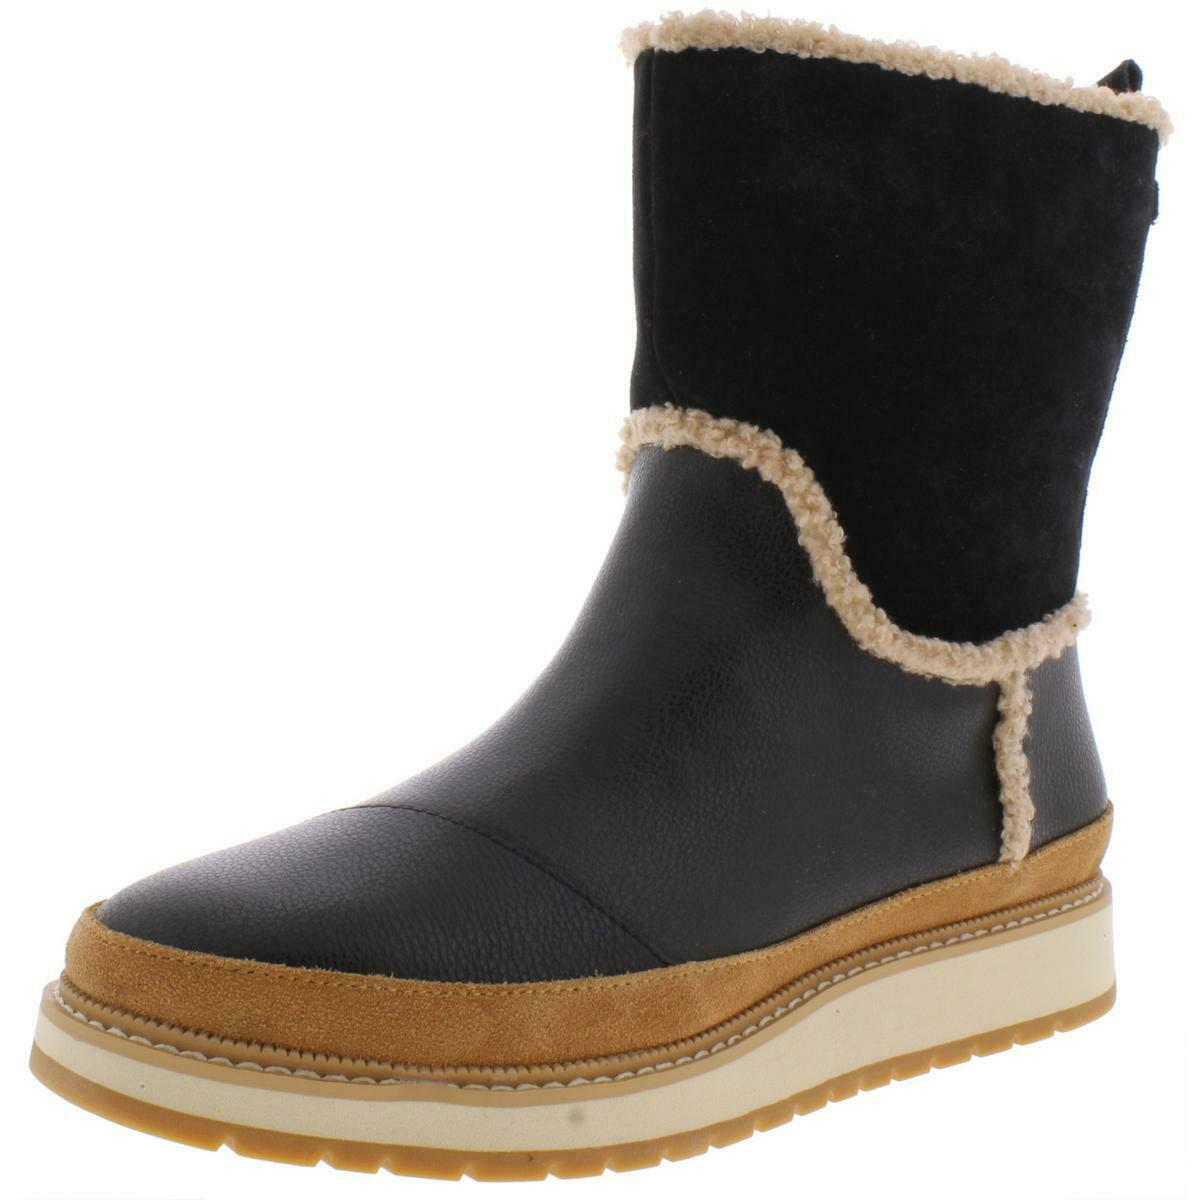 Toms Womens Makenna Black Leather Casual Boots Shoes 6.5 Medium (B,M) BHFO 2216